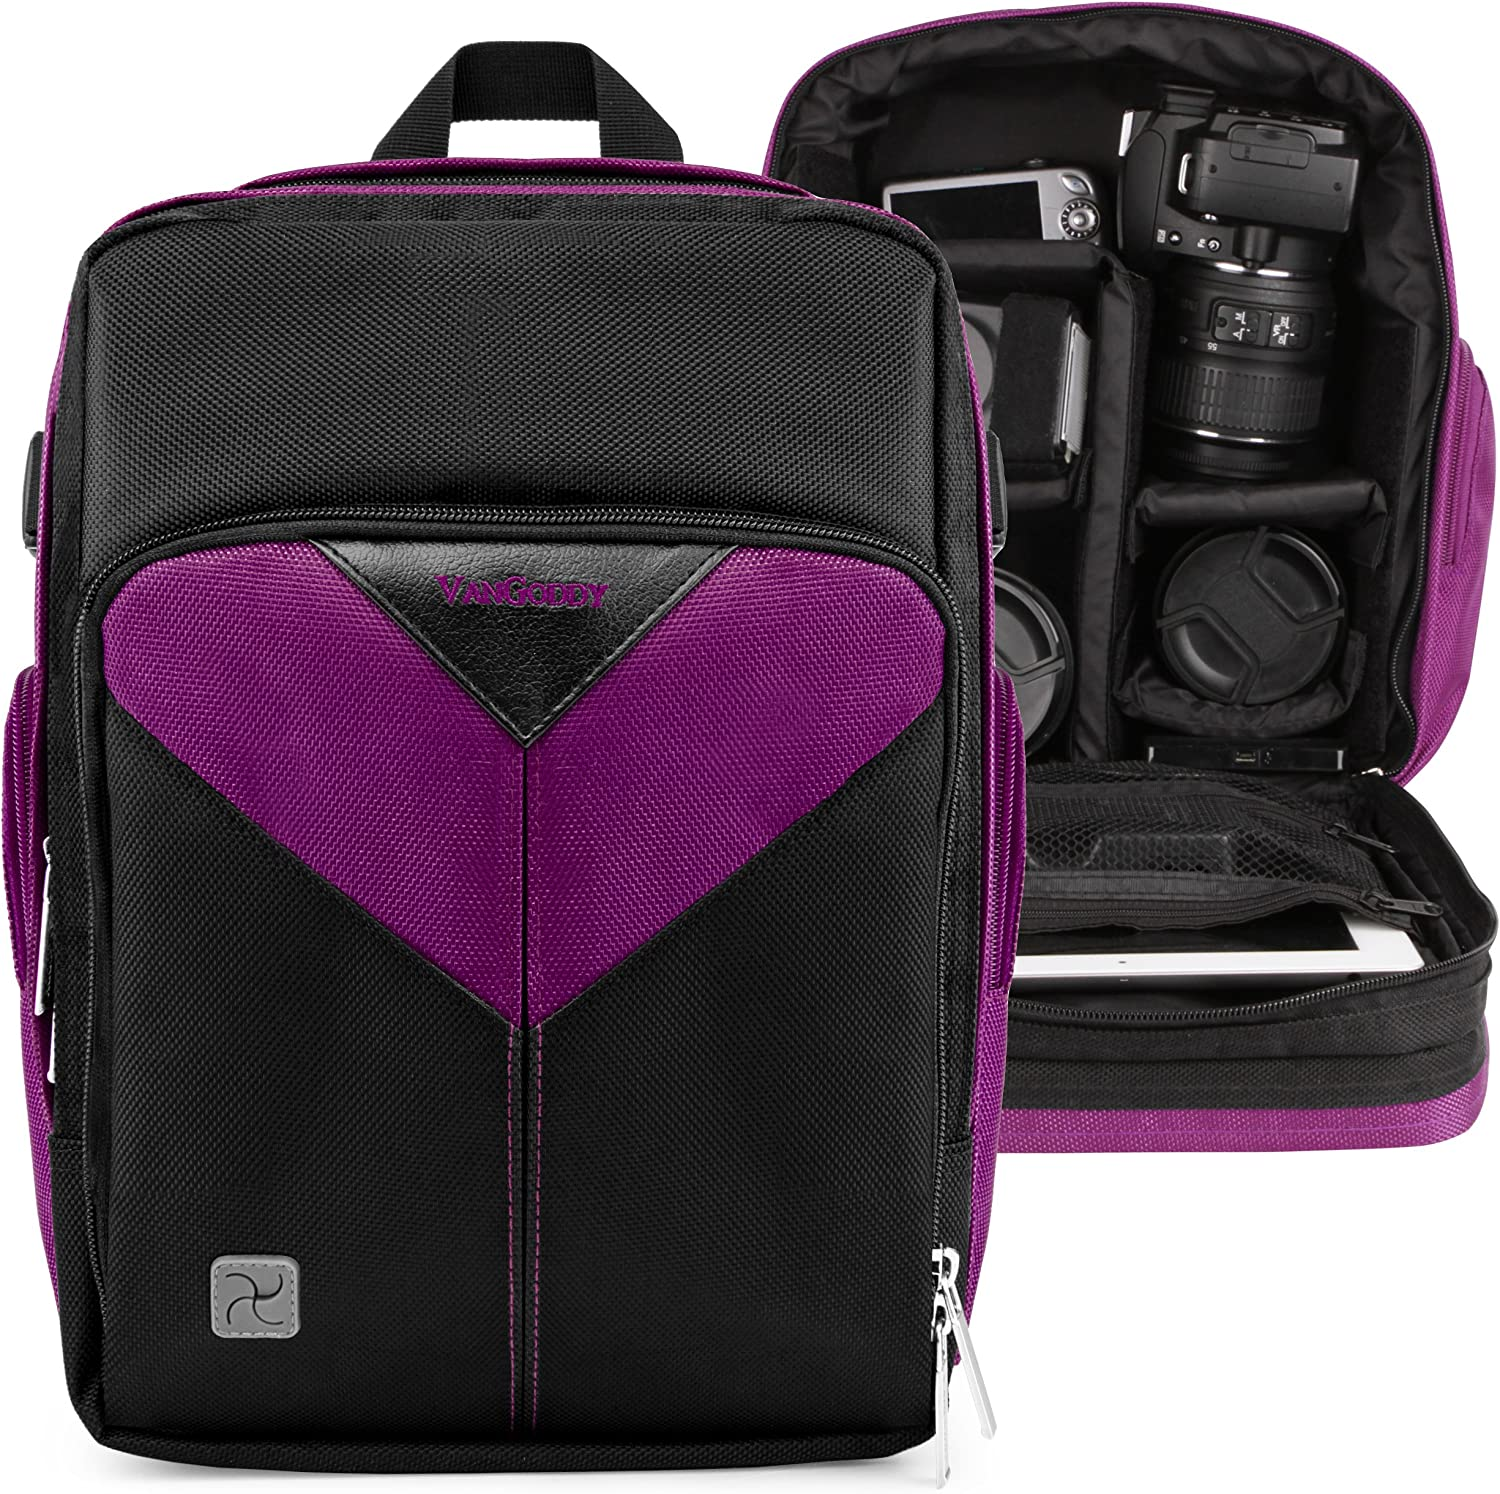 Photographer Camera and Lens Bag Brand new Max 56% OFF for Purple Nikon D5600 D5500